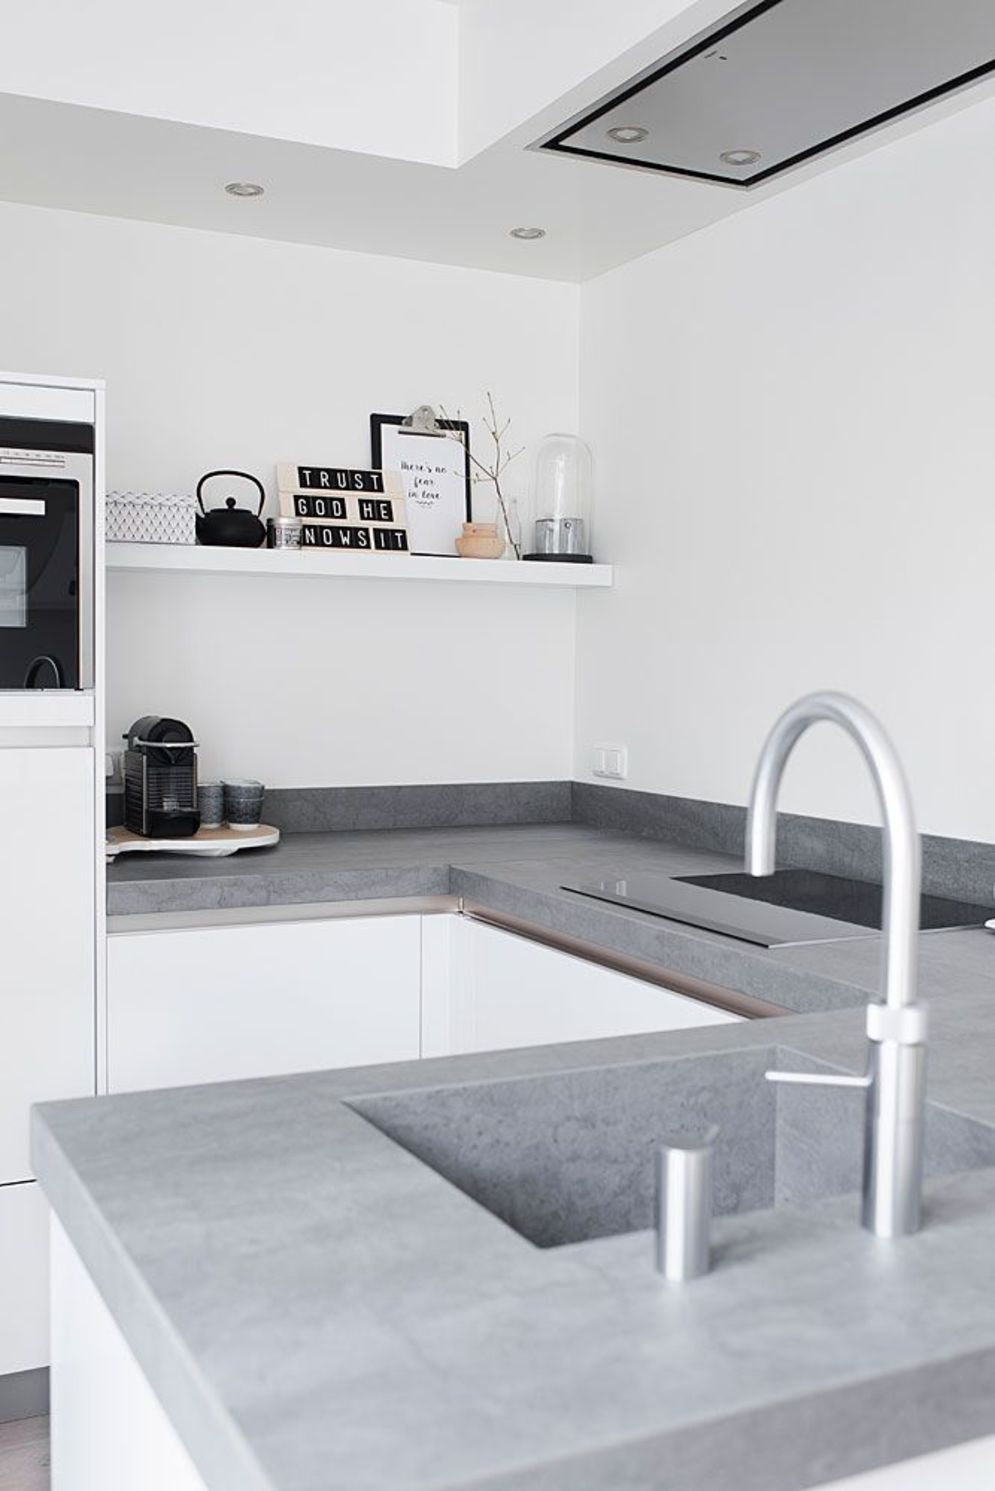 Classy kitchen styles in bold display maximizing concrete benchtop designs Image 7